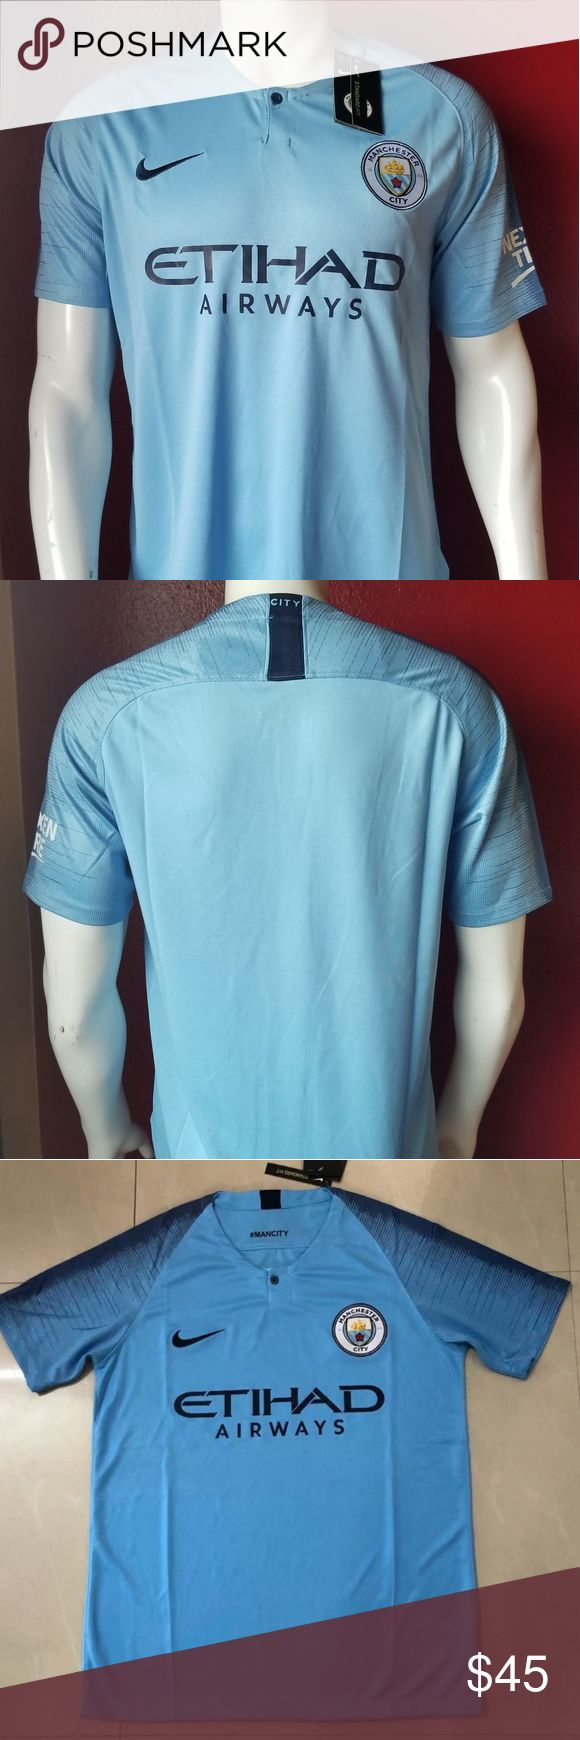 MANCHESTER CITY PREMIER LEAGUE SOCCER JERSEY Brand new  Never used  Same bussiness day shipping Perfect gift for your friend, boyfriend or husband FOO…